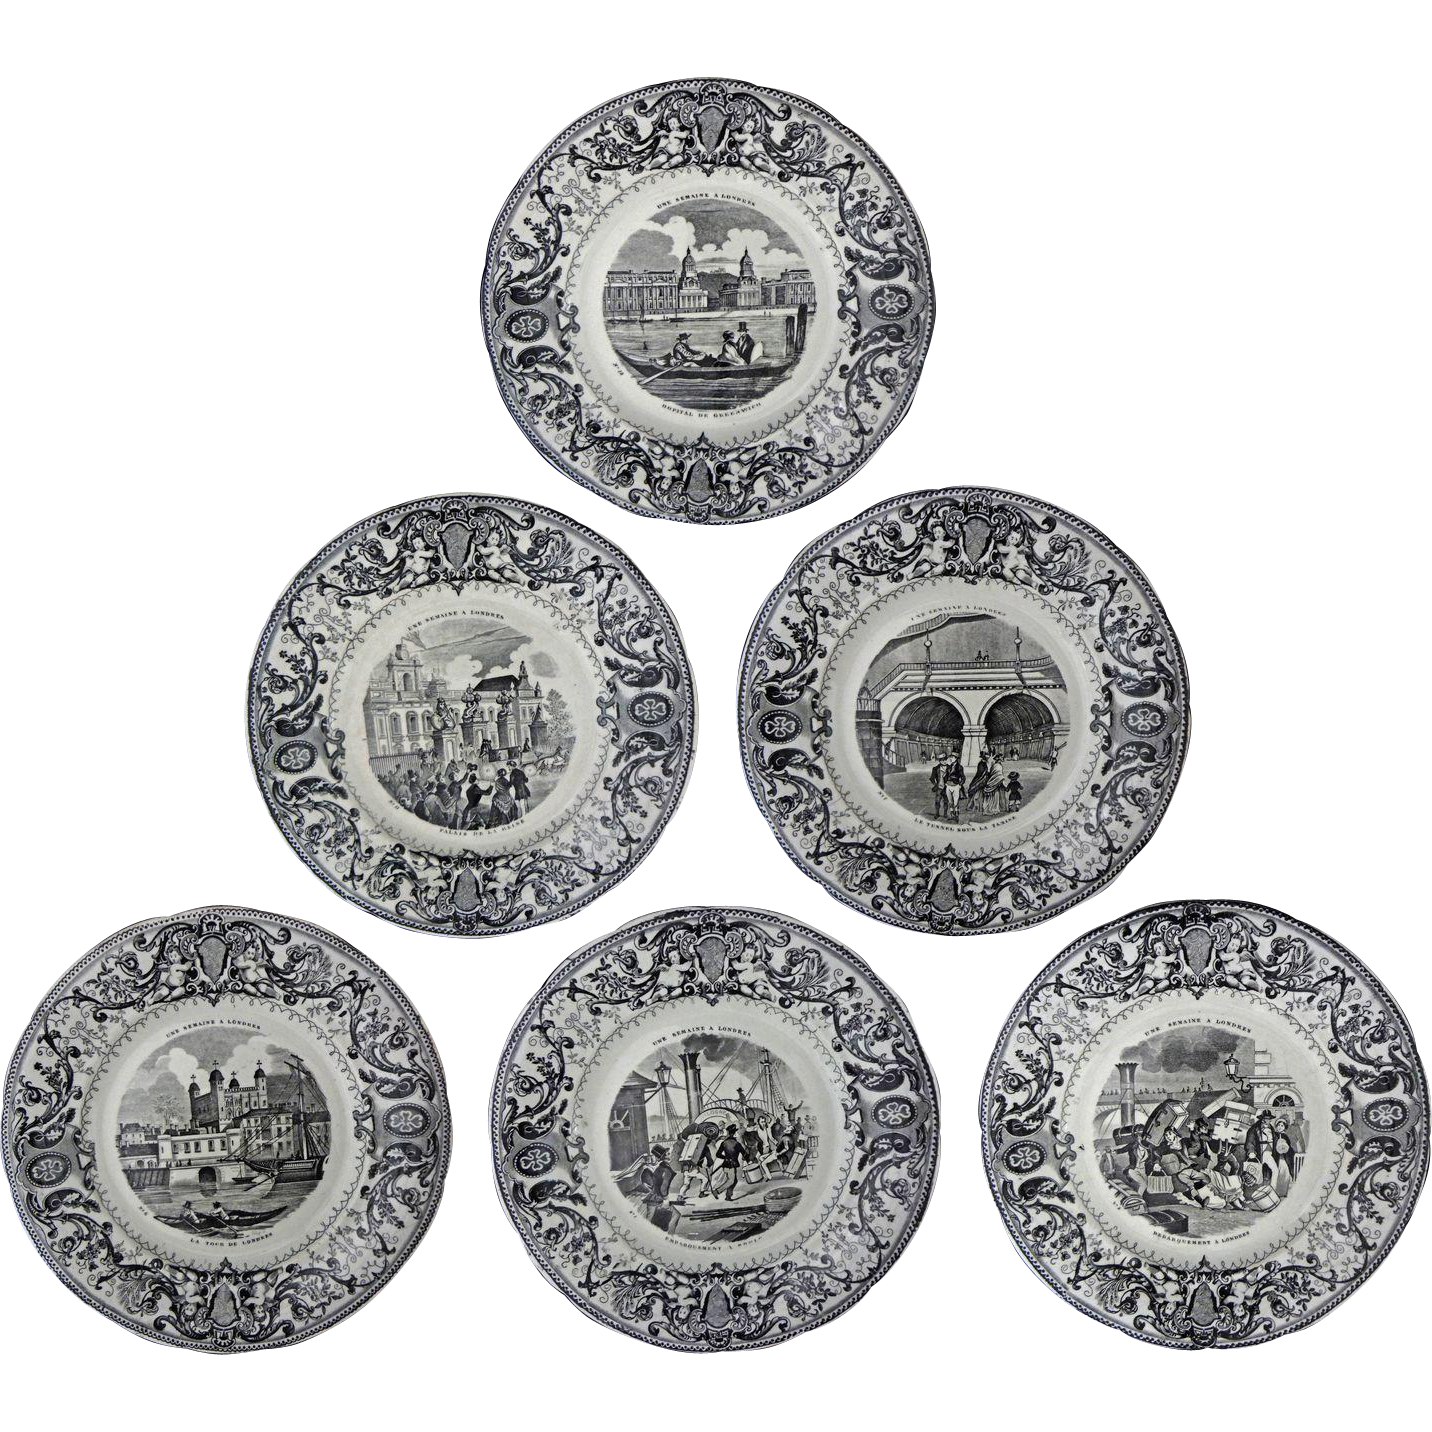 Set 6 Antique French Creil Montereau Grisaille Transferware Plates - c. 1850, France